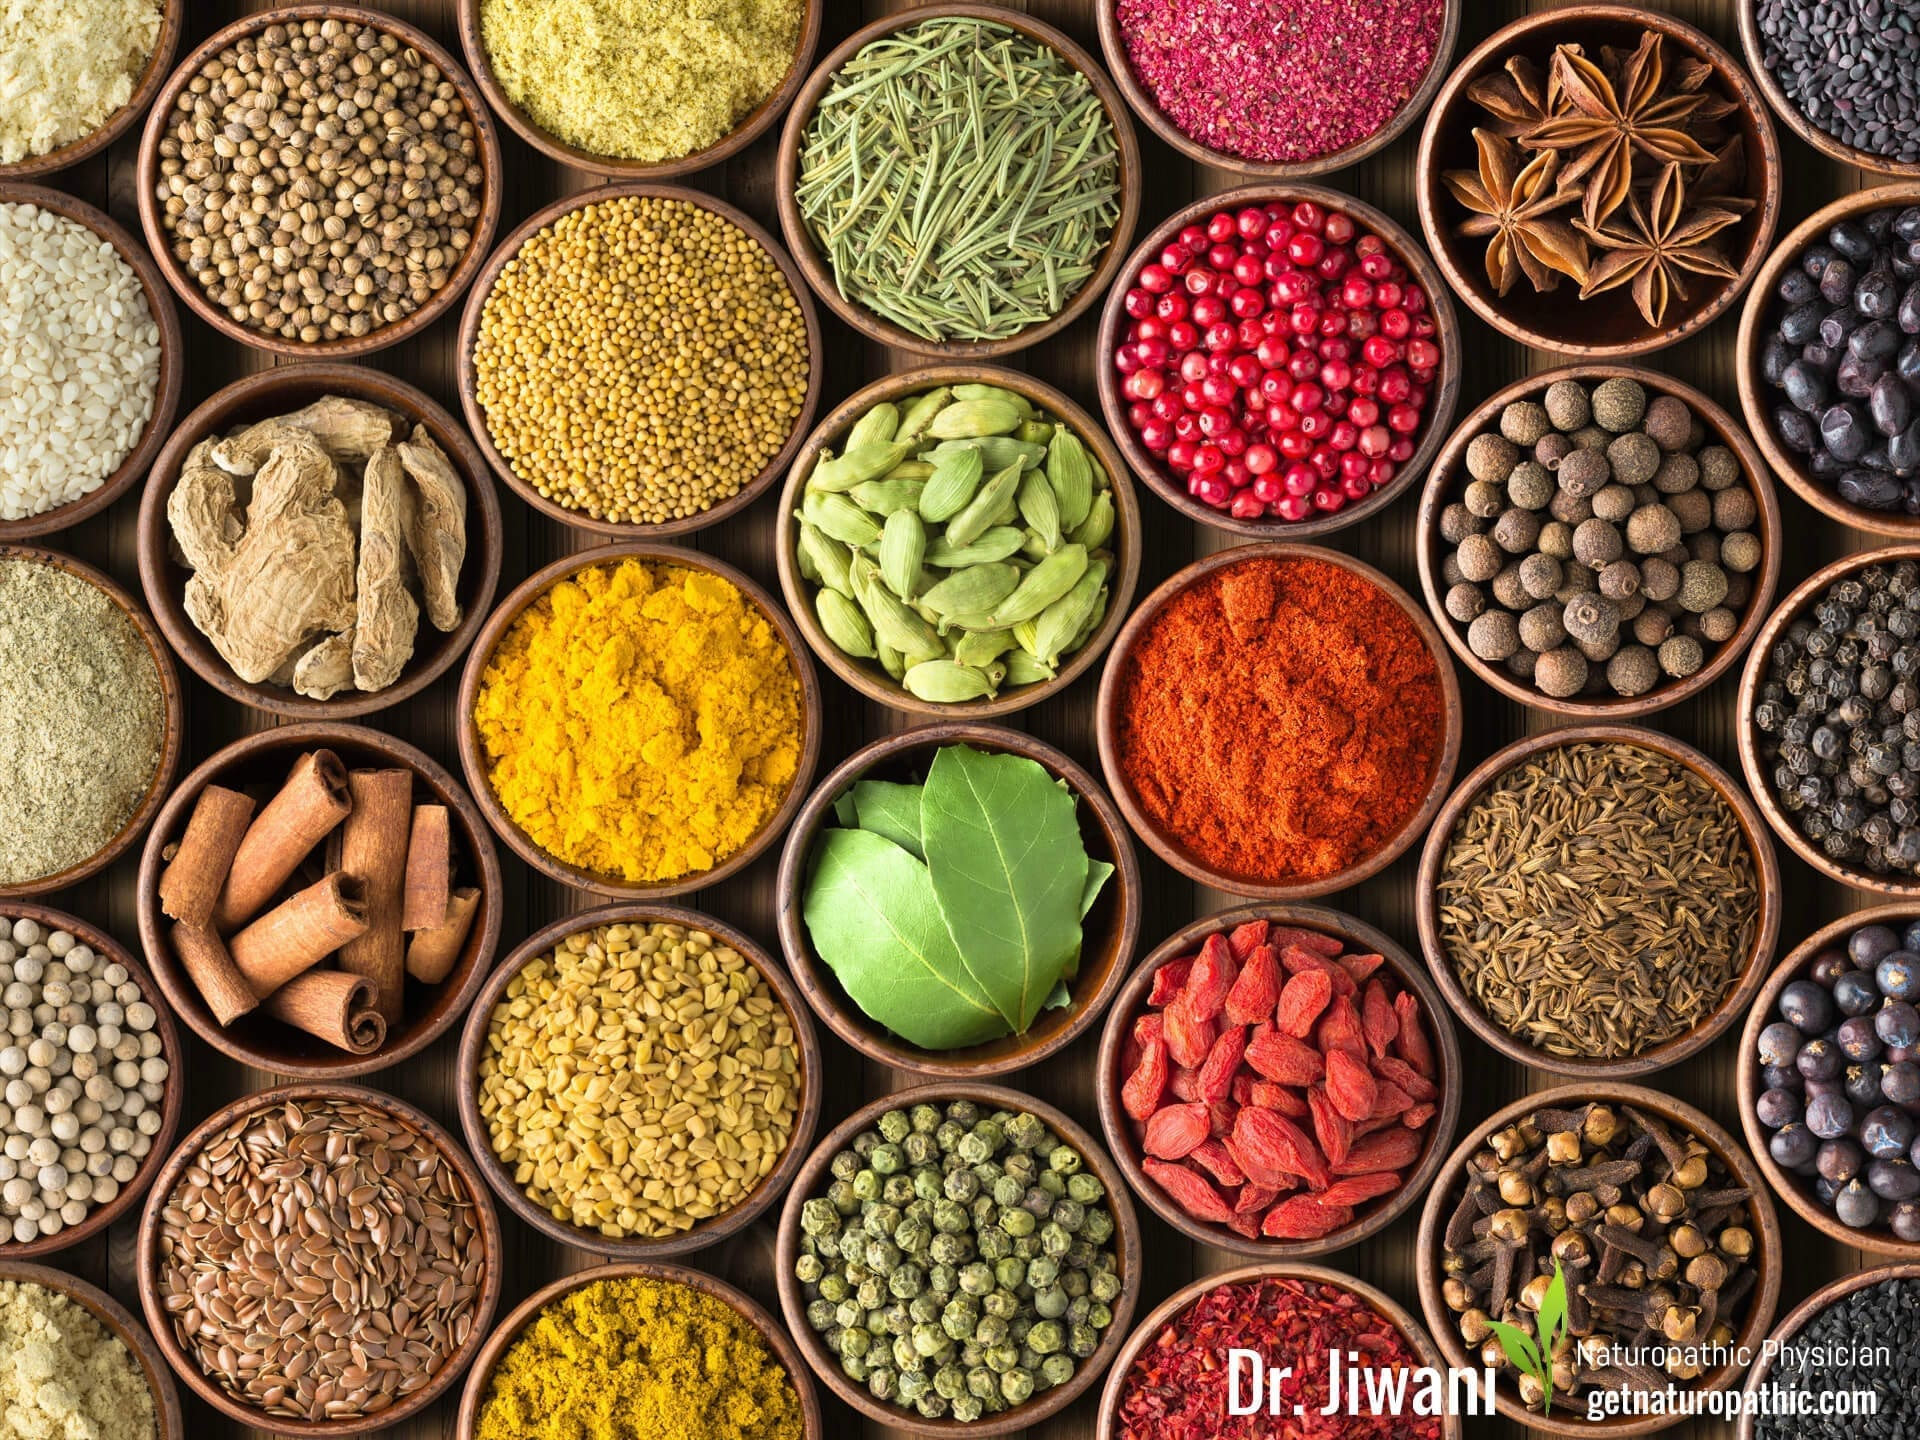 Shopping for Health: Dr. Jiwani's Naturopathic Grocery List | Dr. Jiwani's Naturopathic Nuggets Blog